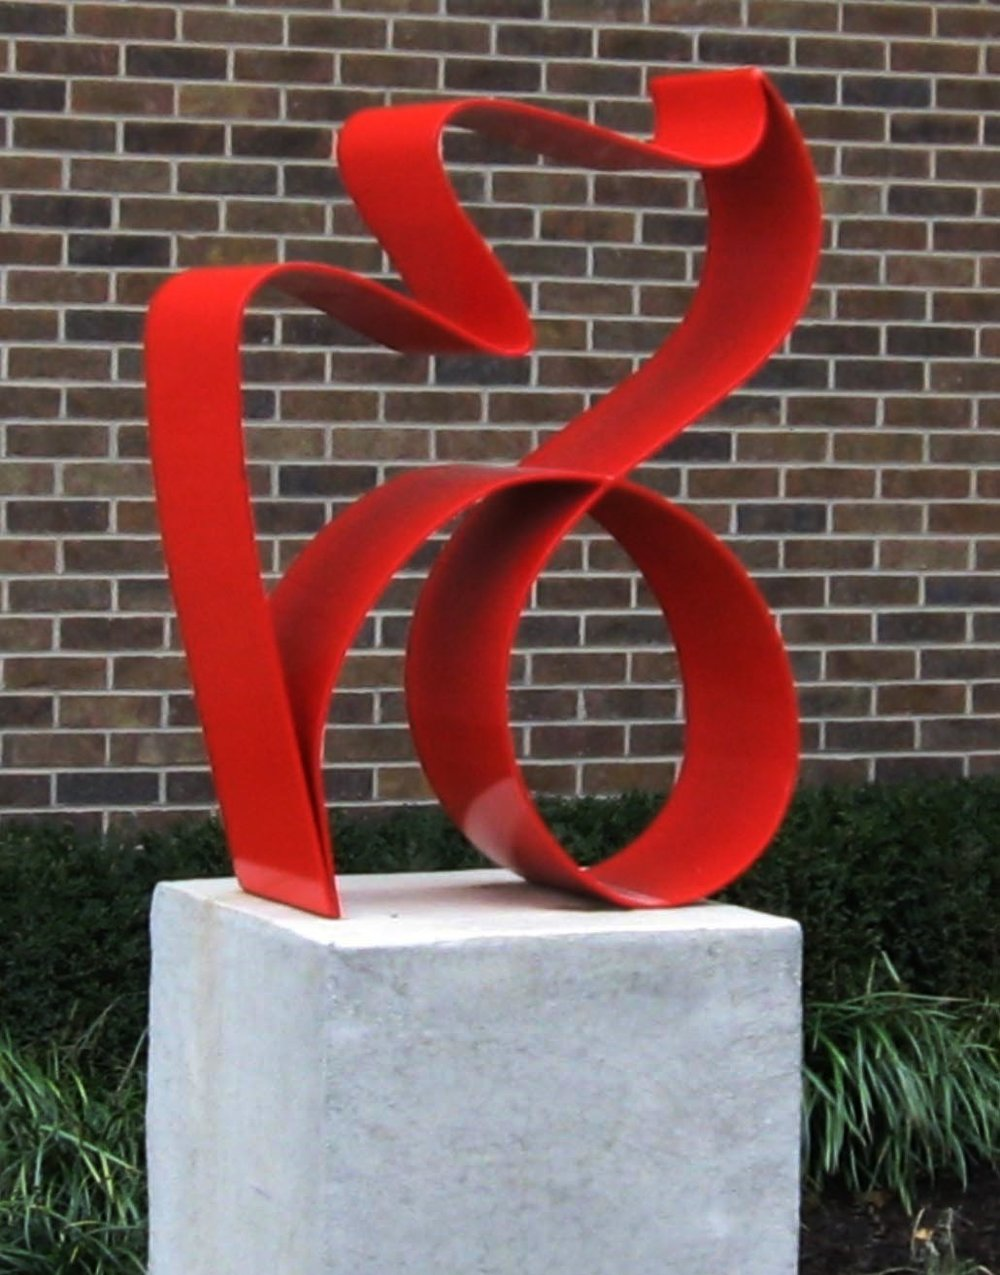 Continuity   1993, painted steel, 40x30x12 in  Installed in 2009 at Dallavis Center at Avila University Kansas City, MO